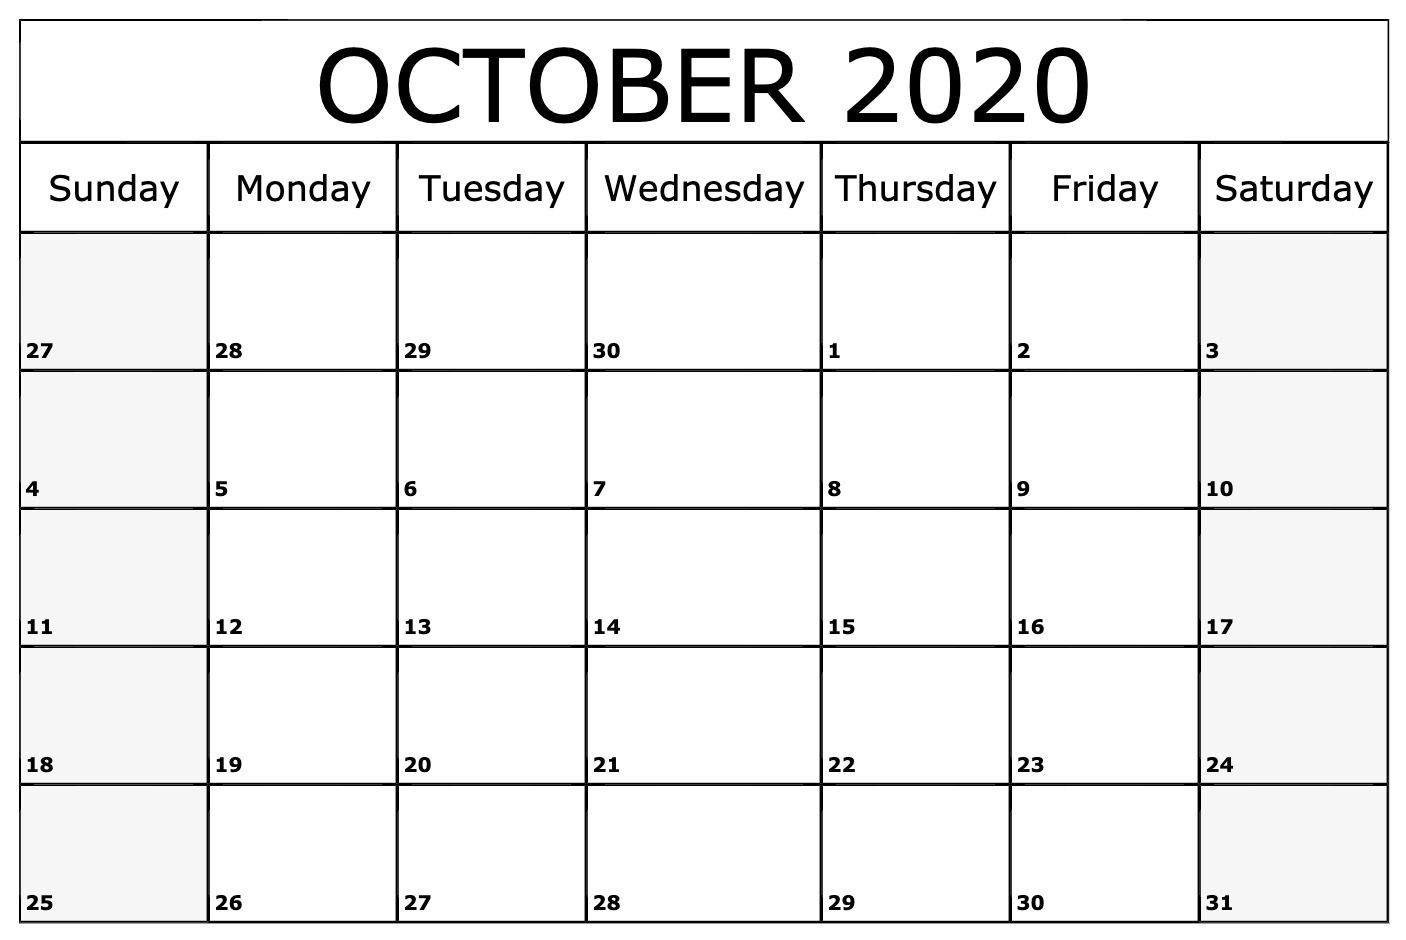 Most Recent Images October 2020 Calendar Thoughts A Custom Made Schedules Are Meant To Give In 2020 Monthly Calendar Printable October Calendar Printable Calendar Word